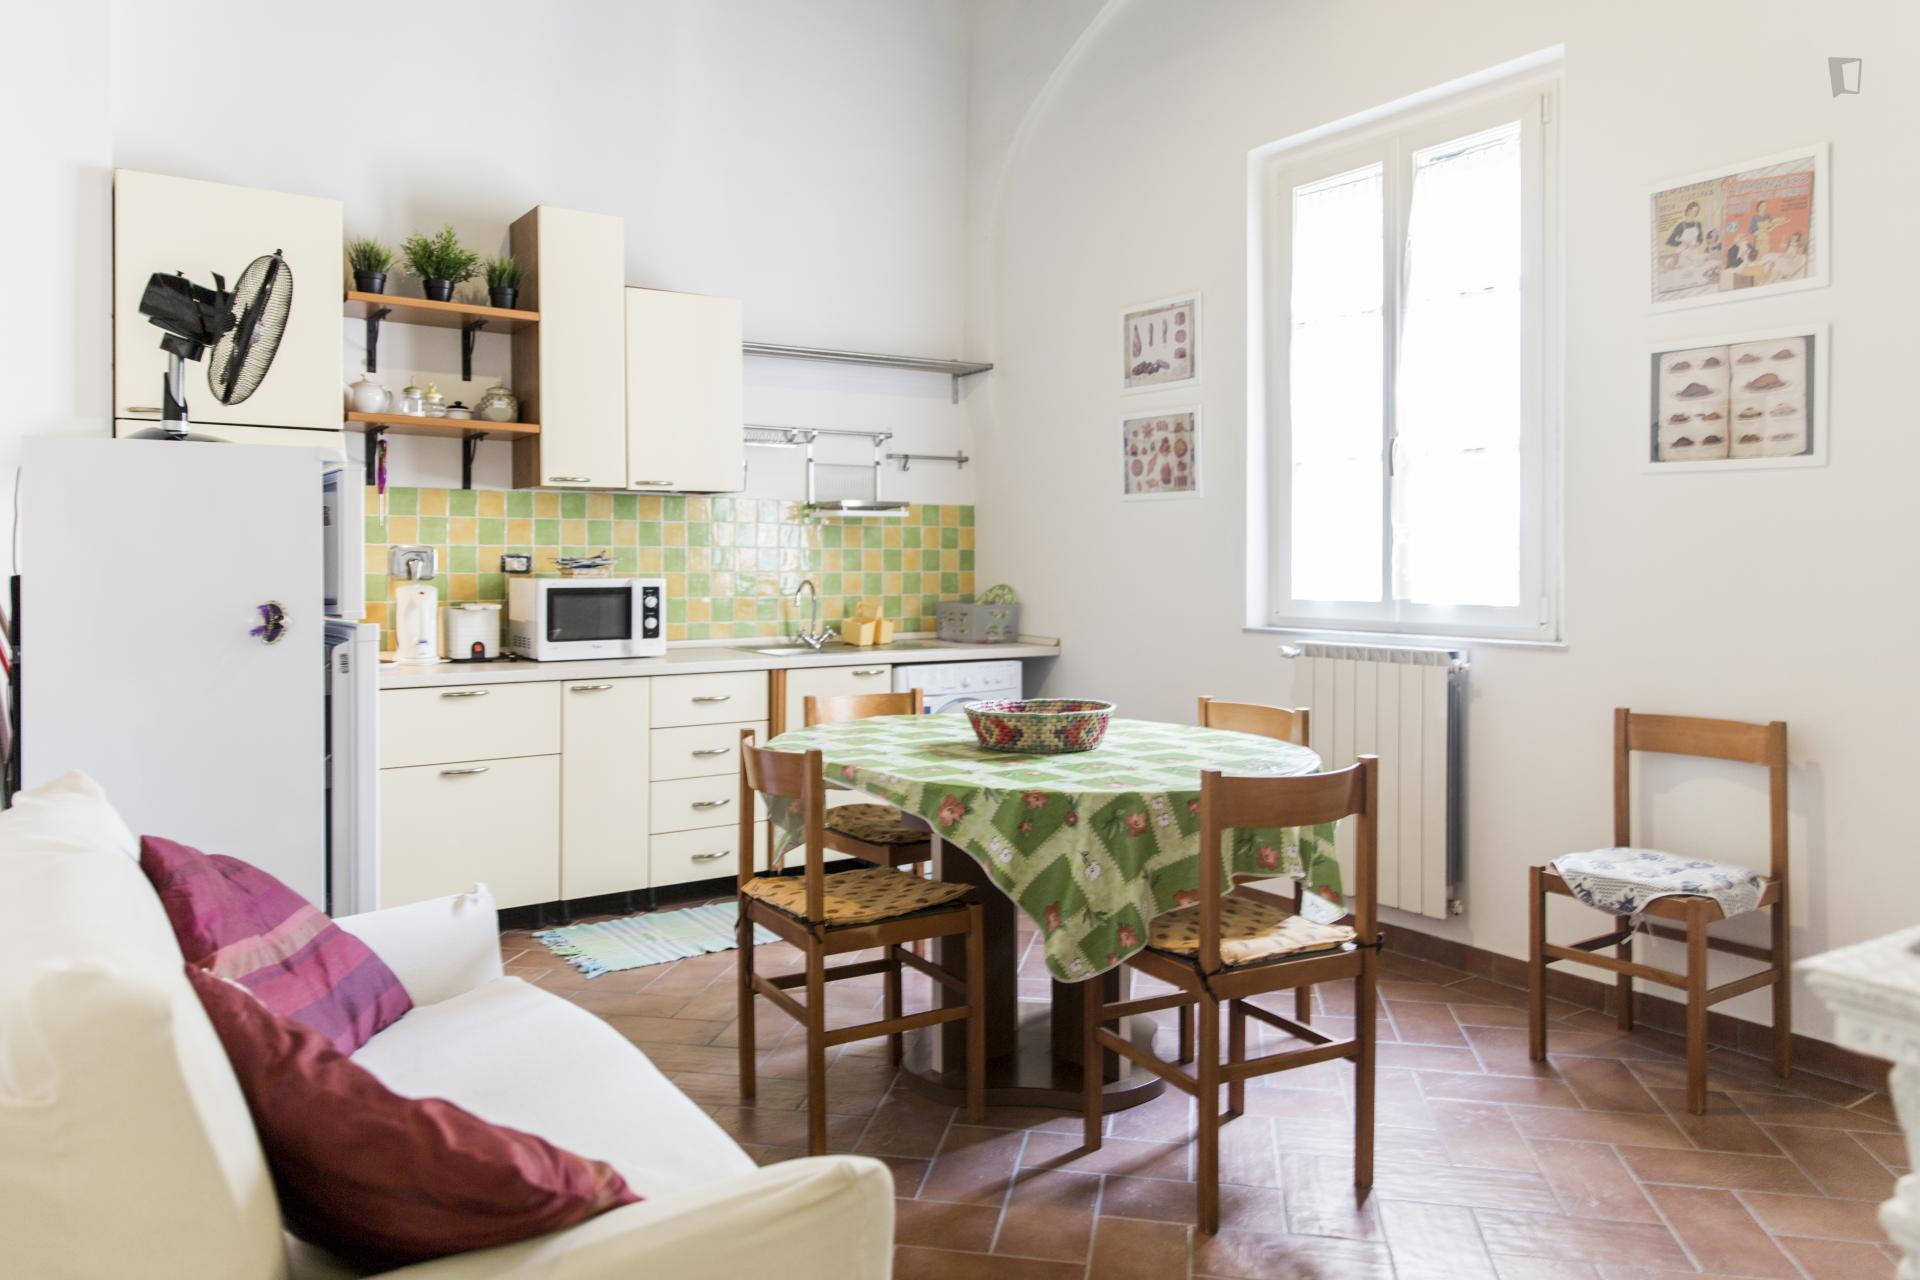 For Rent 3 bed Apartment in Florence-Firenze Florence ...